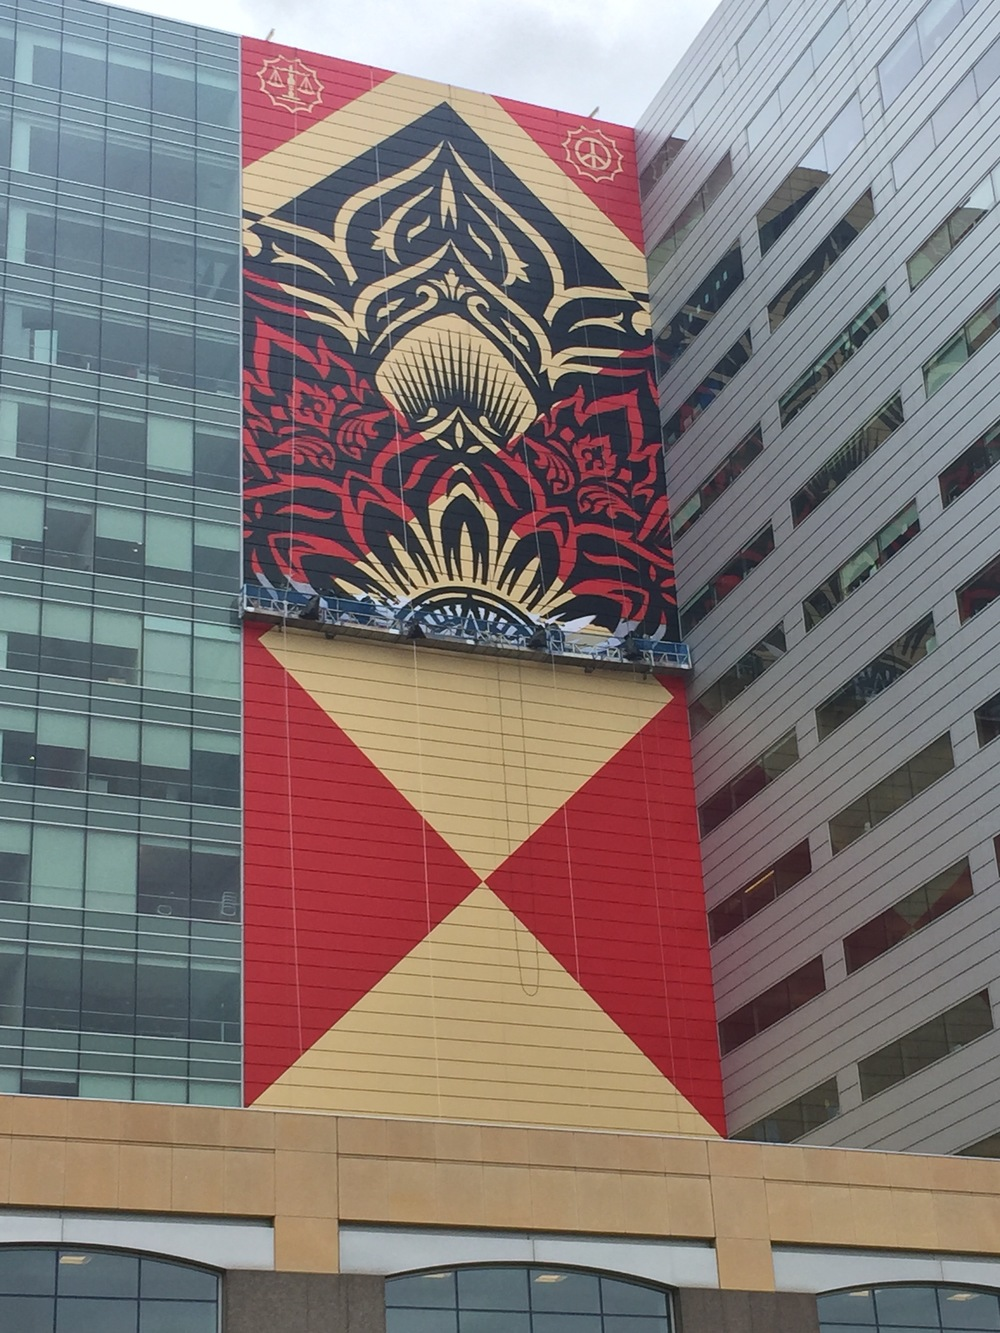 Shepherd Fairey  works on a new mural on the side of One Campus Martius.